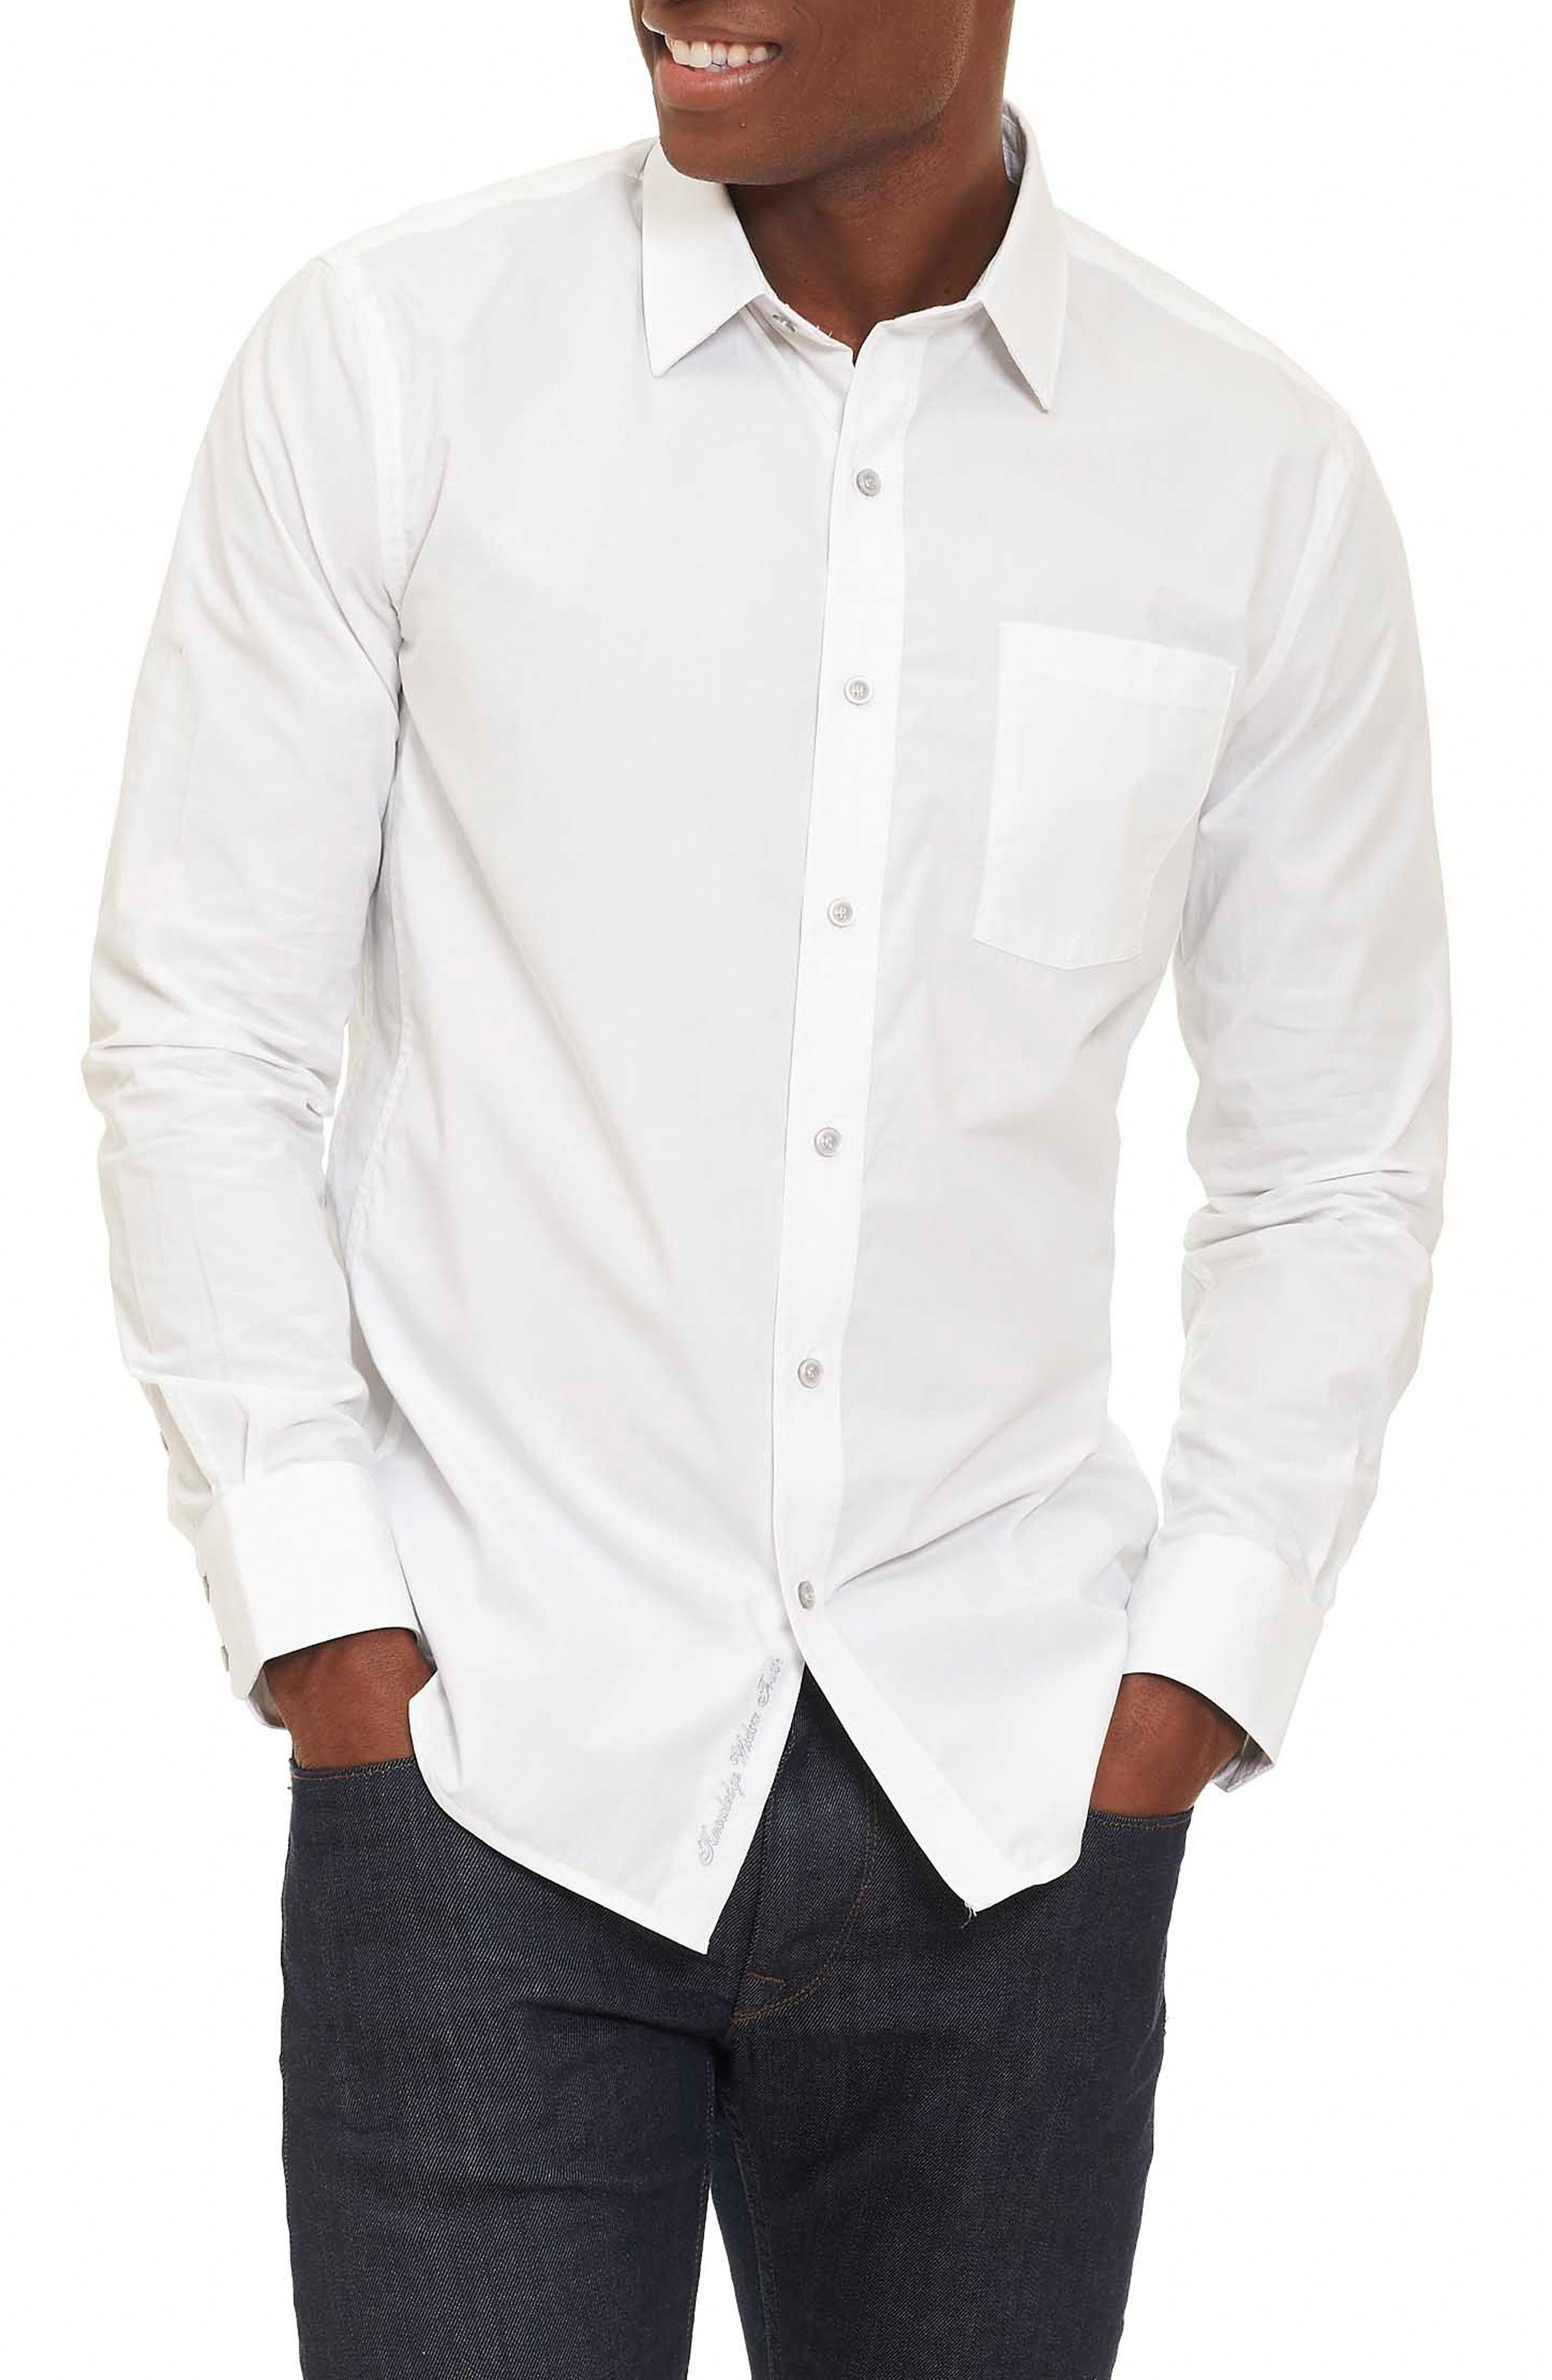 Groves Tailored Fit Sport Shirt,                         Main,                         color, 100